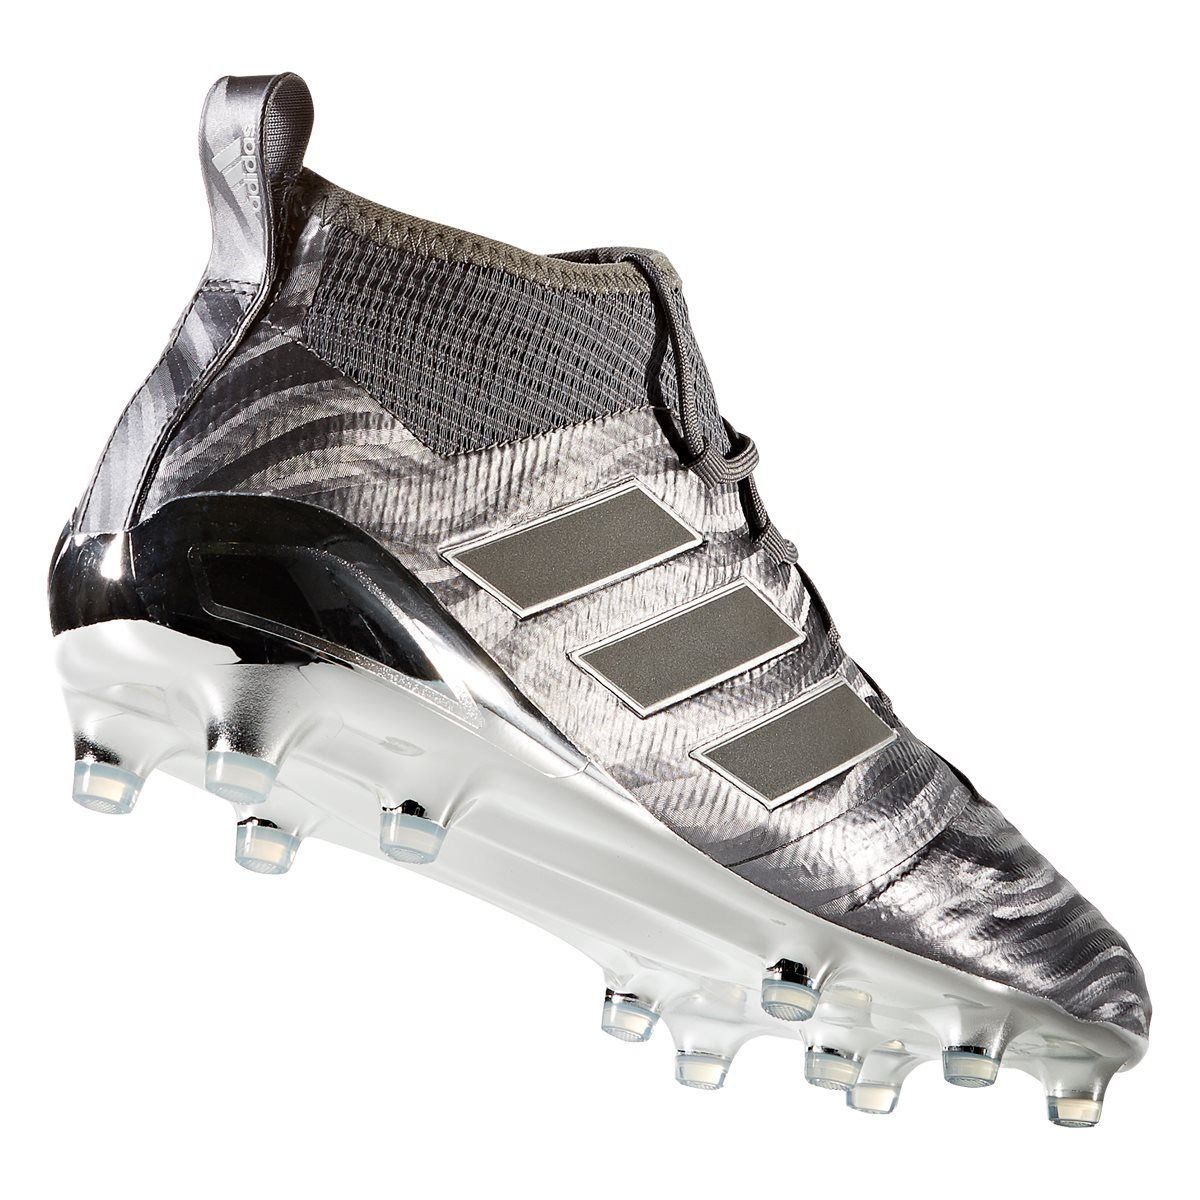 adidas ace 17.1 fg soccer cleat magnetic control limited release